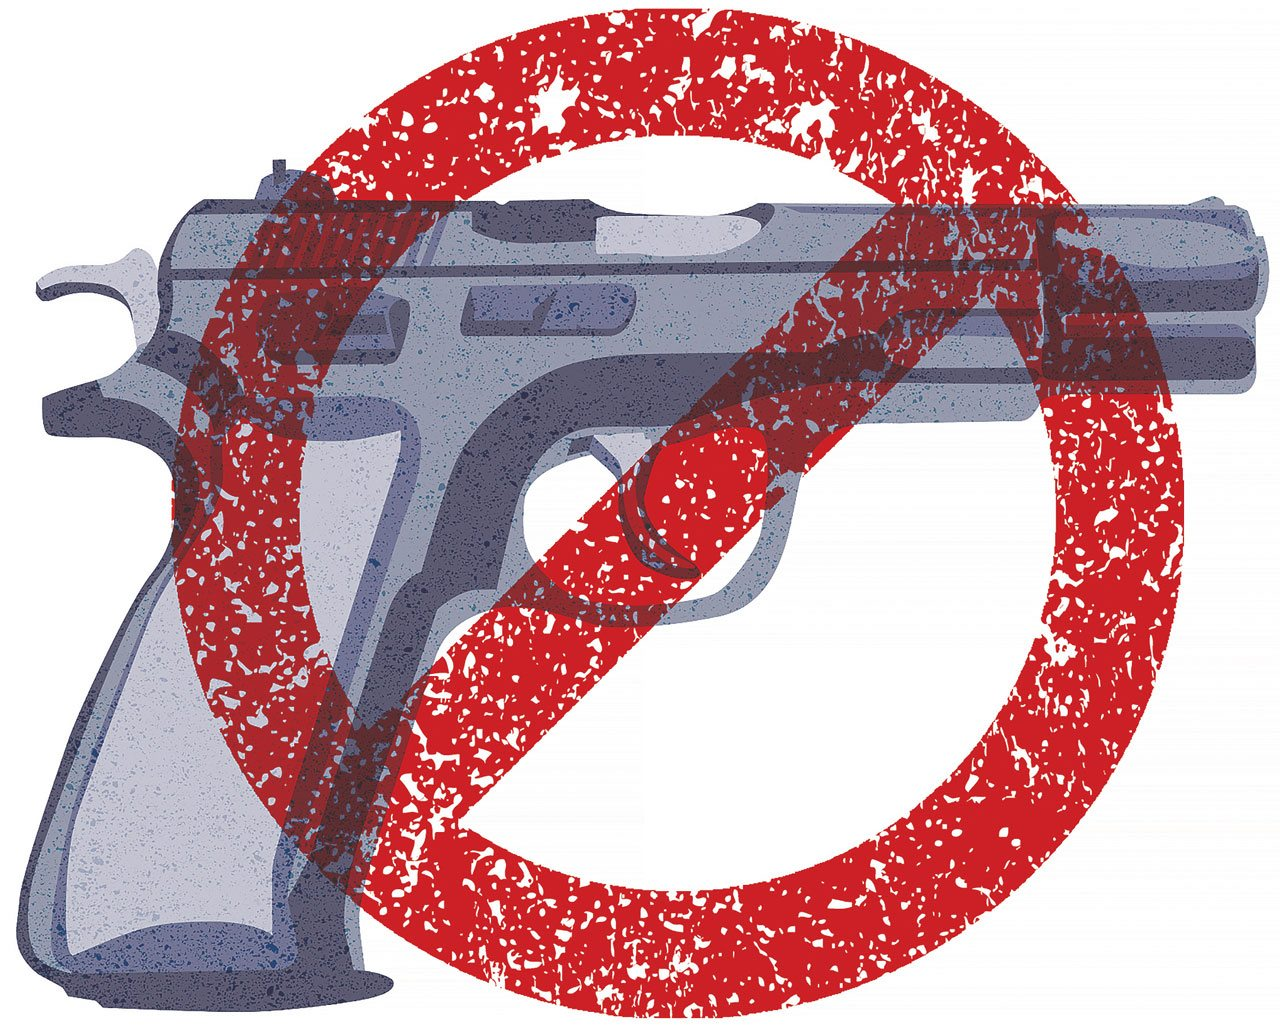 Taking aim at the Arms Trade Treaty